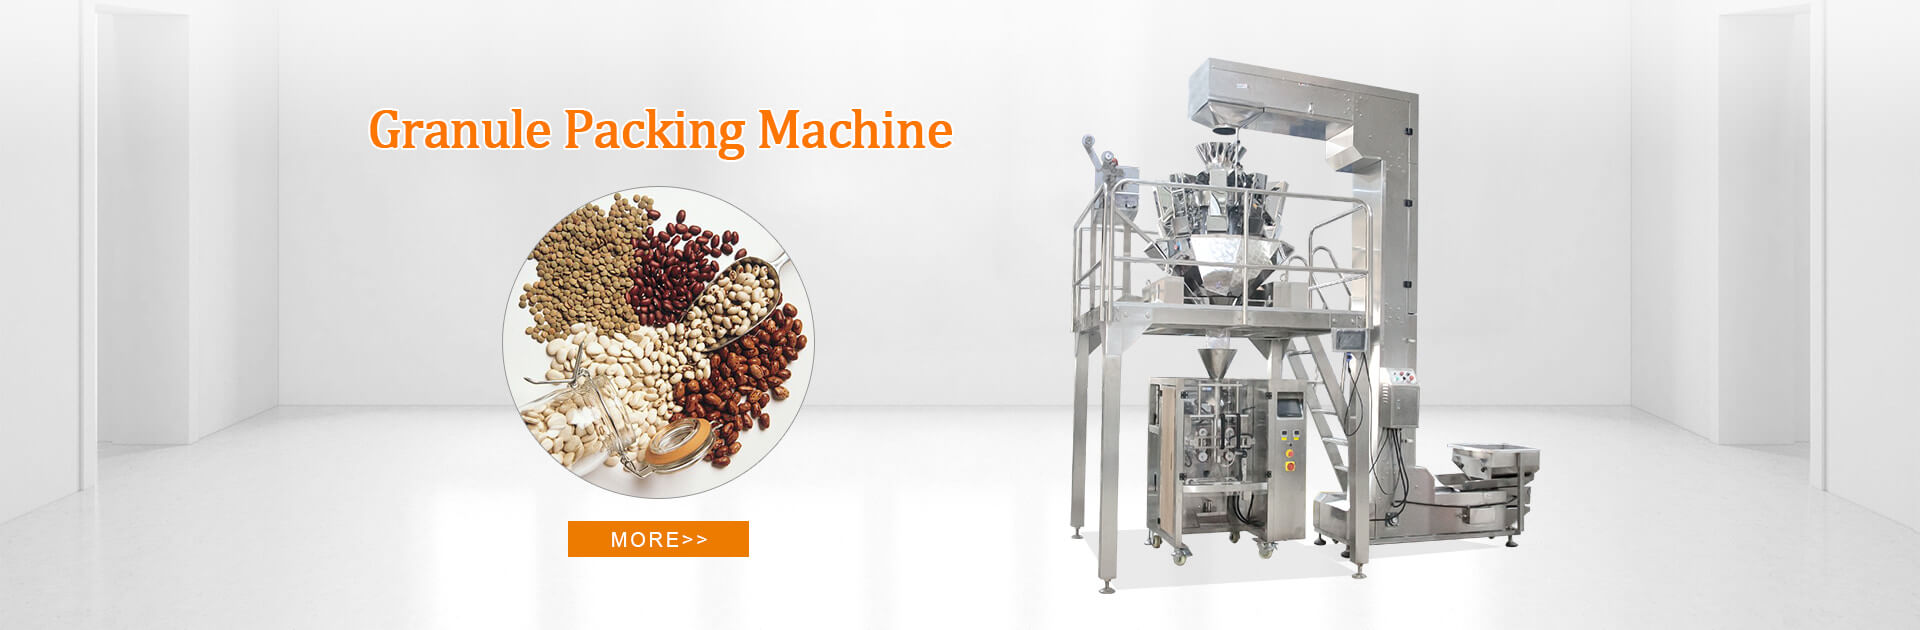 grain packaging machine